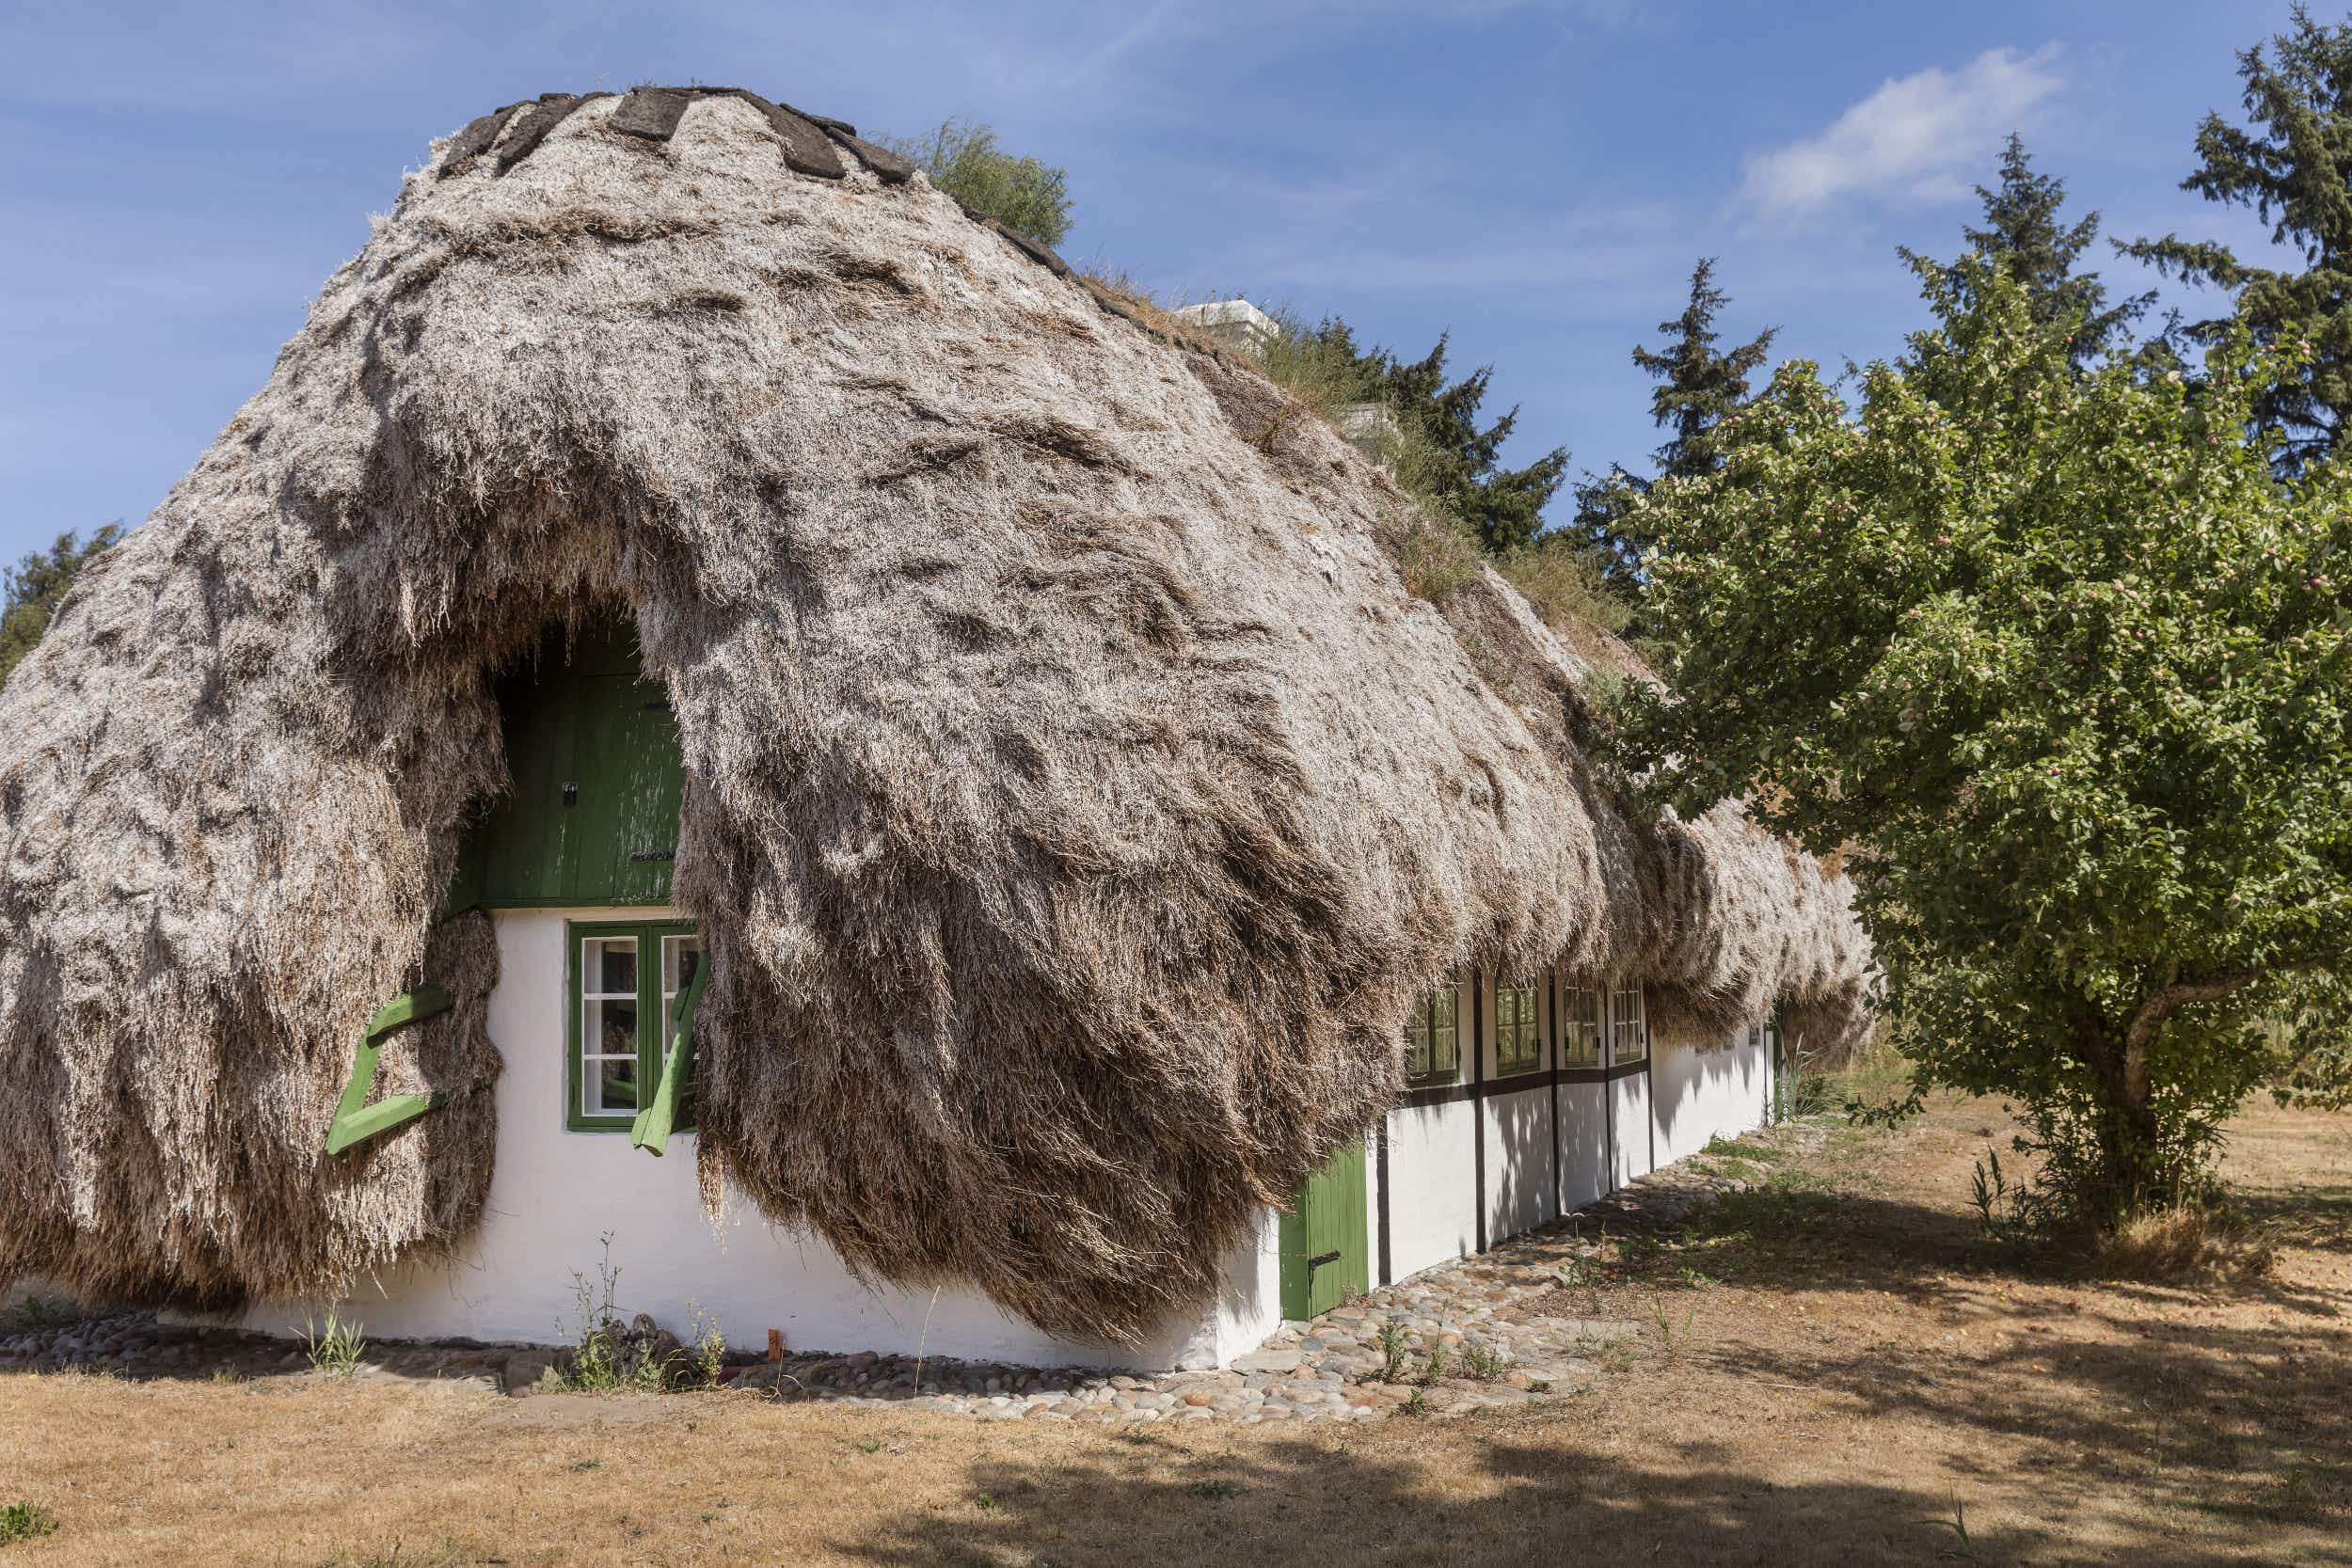 This Danish island has a historical cottage with a seaweed roof that you can rent or buy